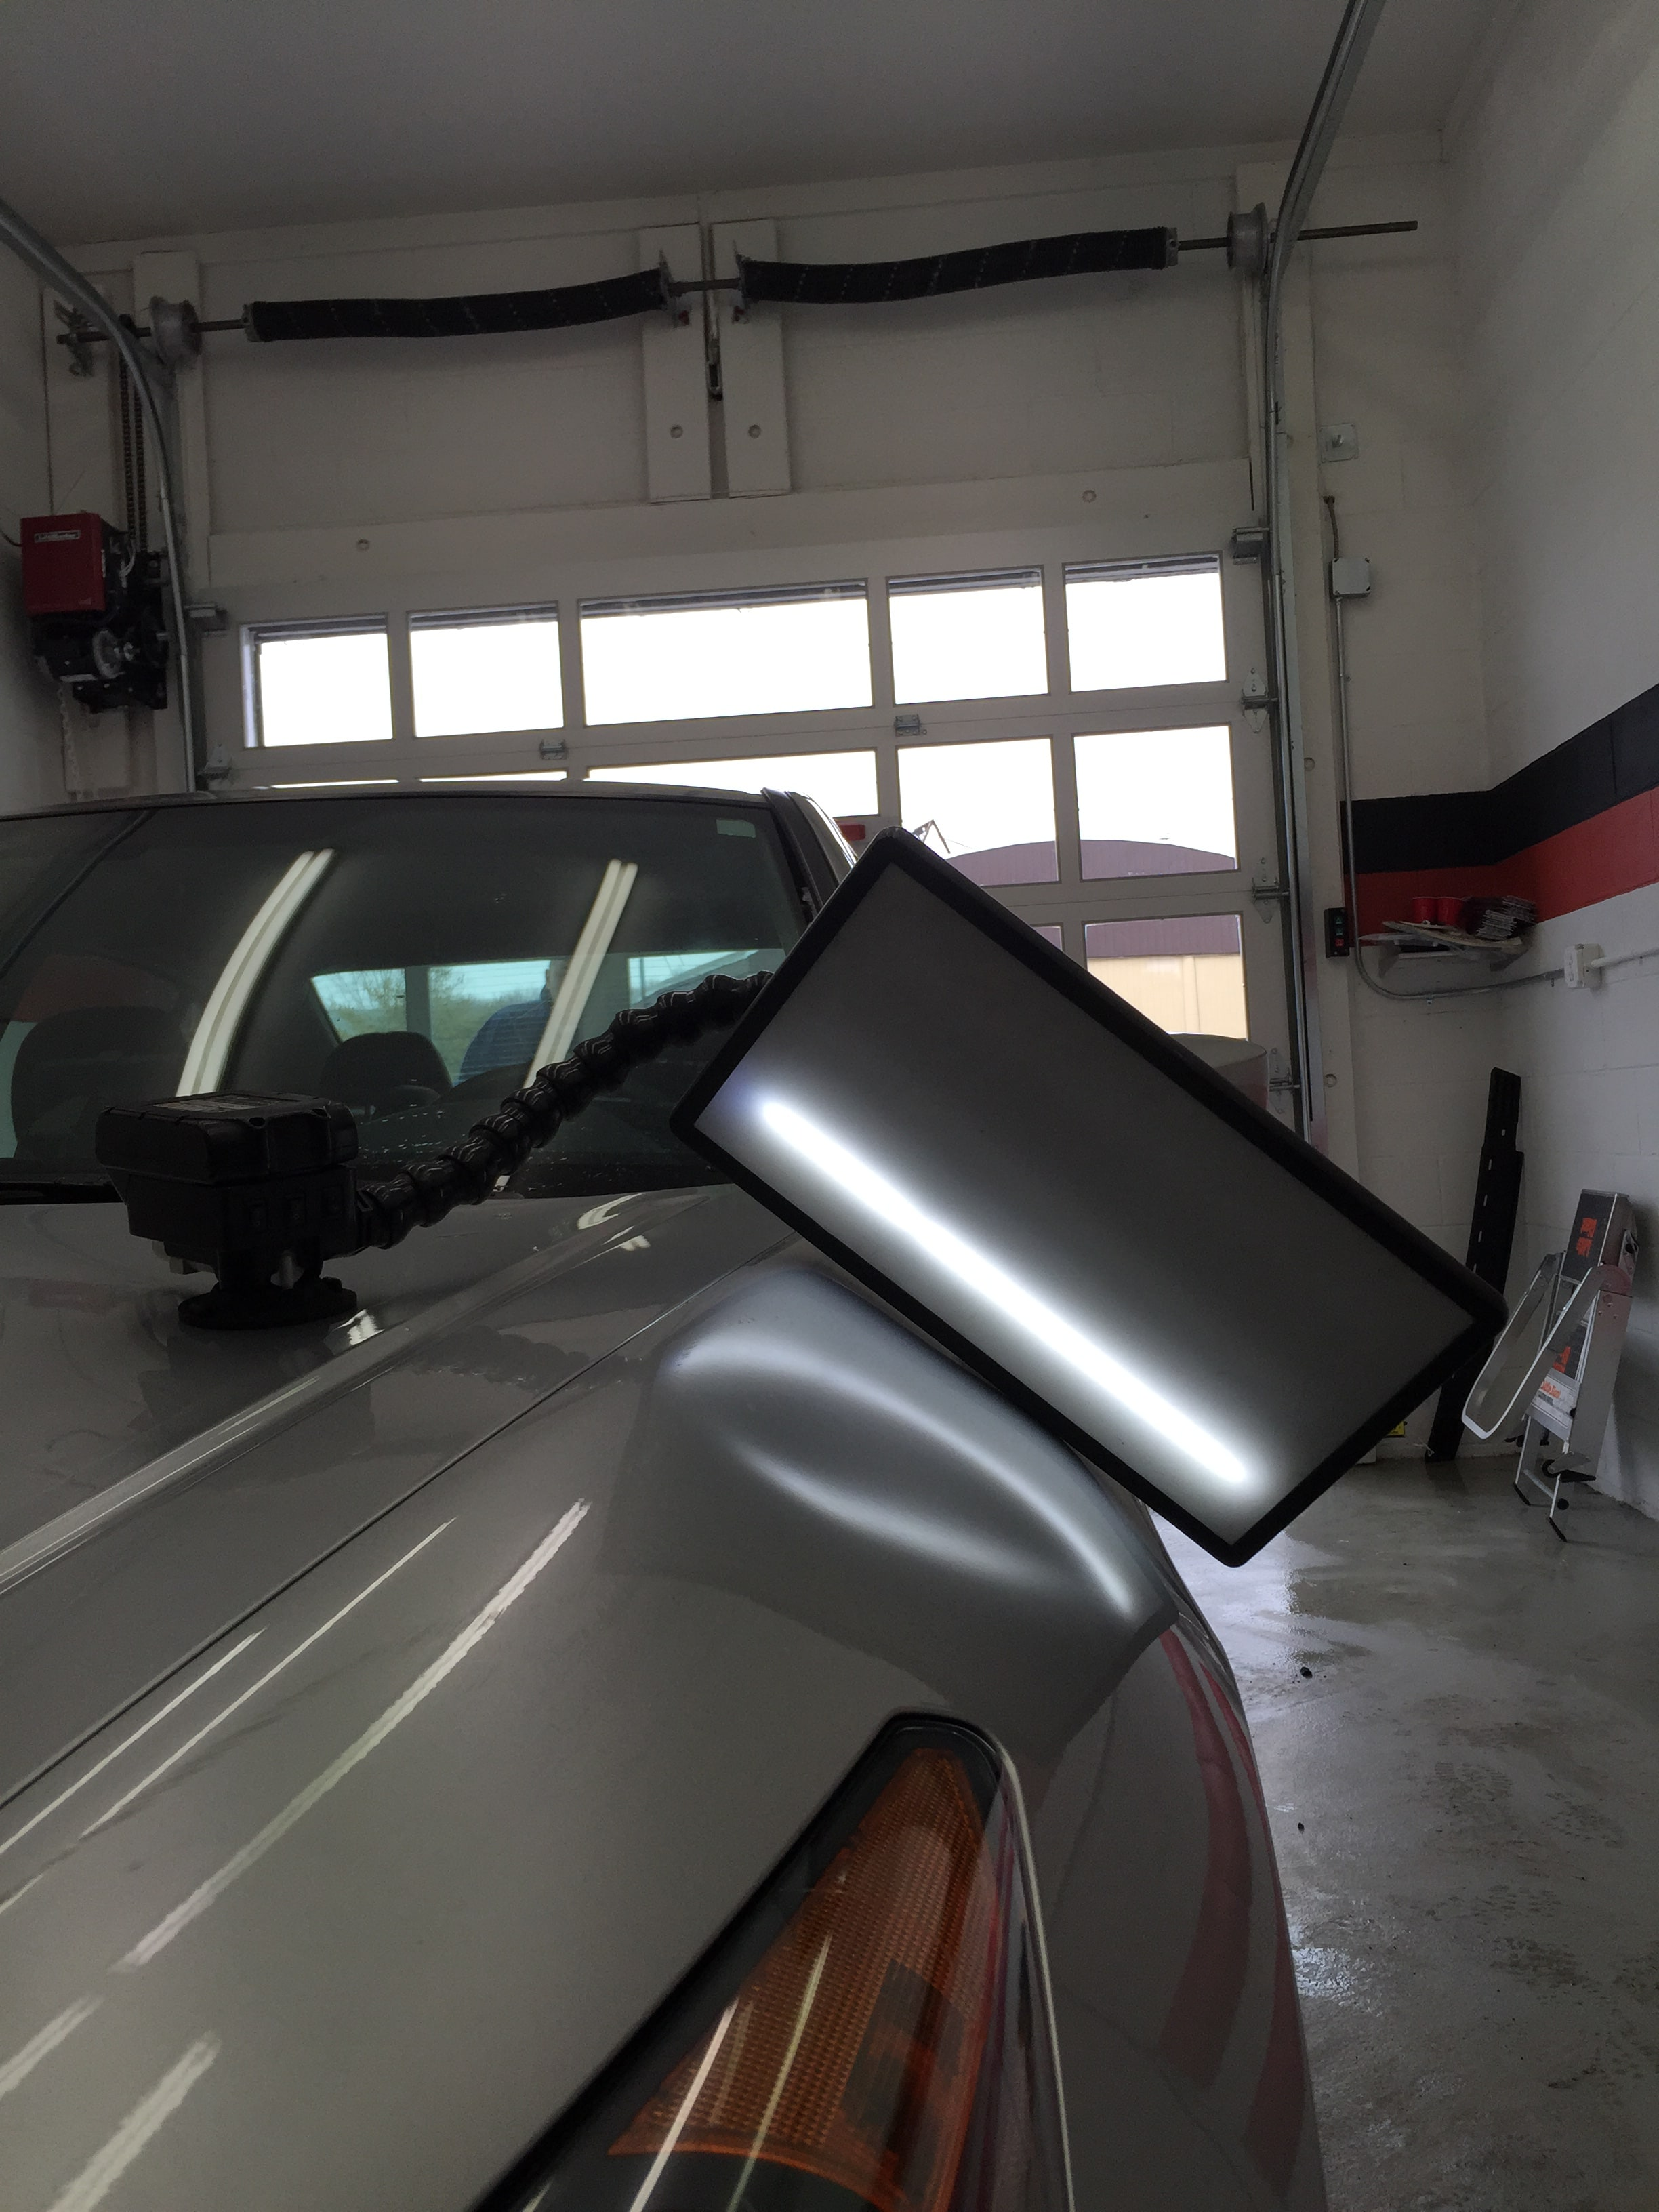 Should you Go for a Low Cost Paintless Dent Repair?